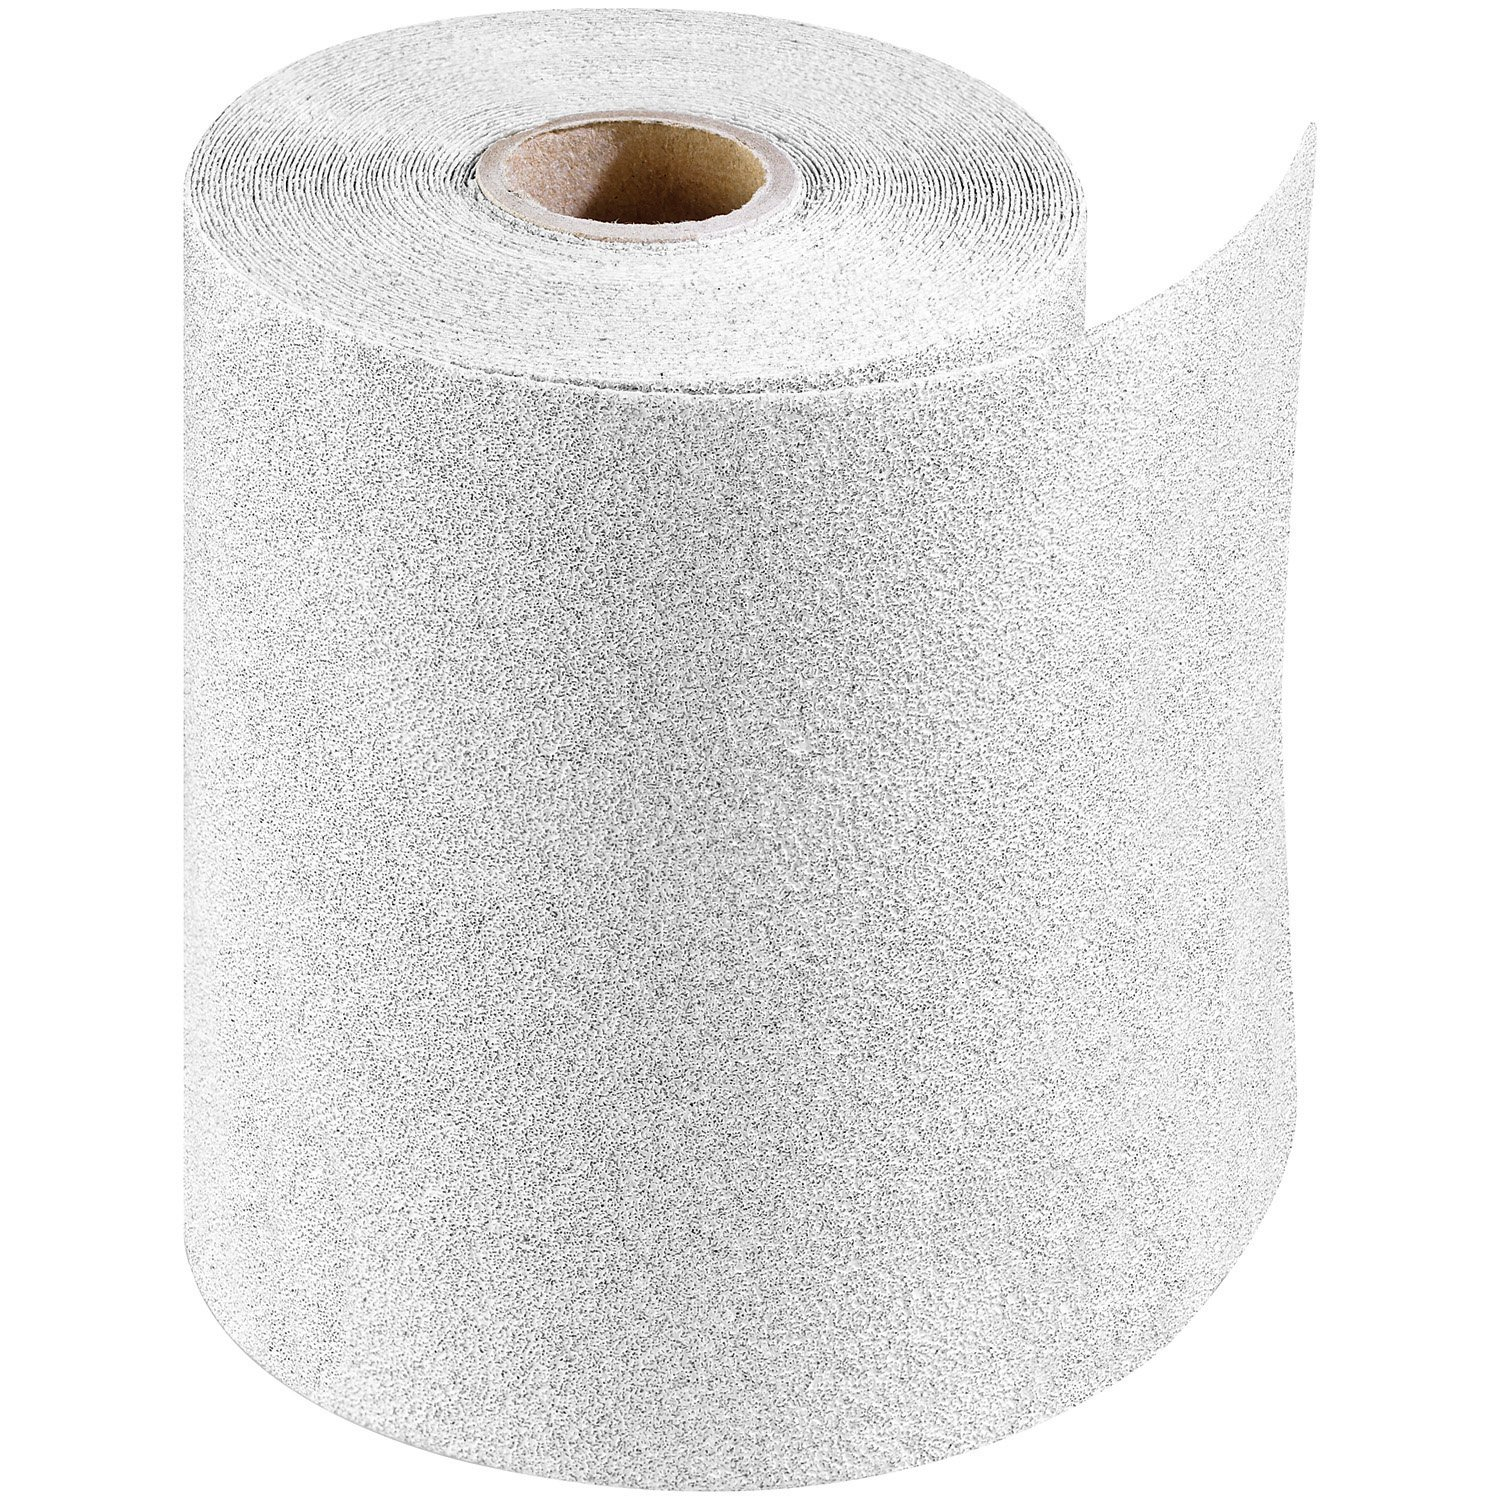 PORTER-CABLE 740000801 4 1/2-Inch x 10yd 80 Grit Adhesive-Backed Sanding Roll by PORTER-CABLE